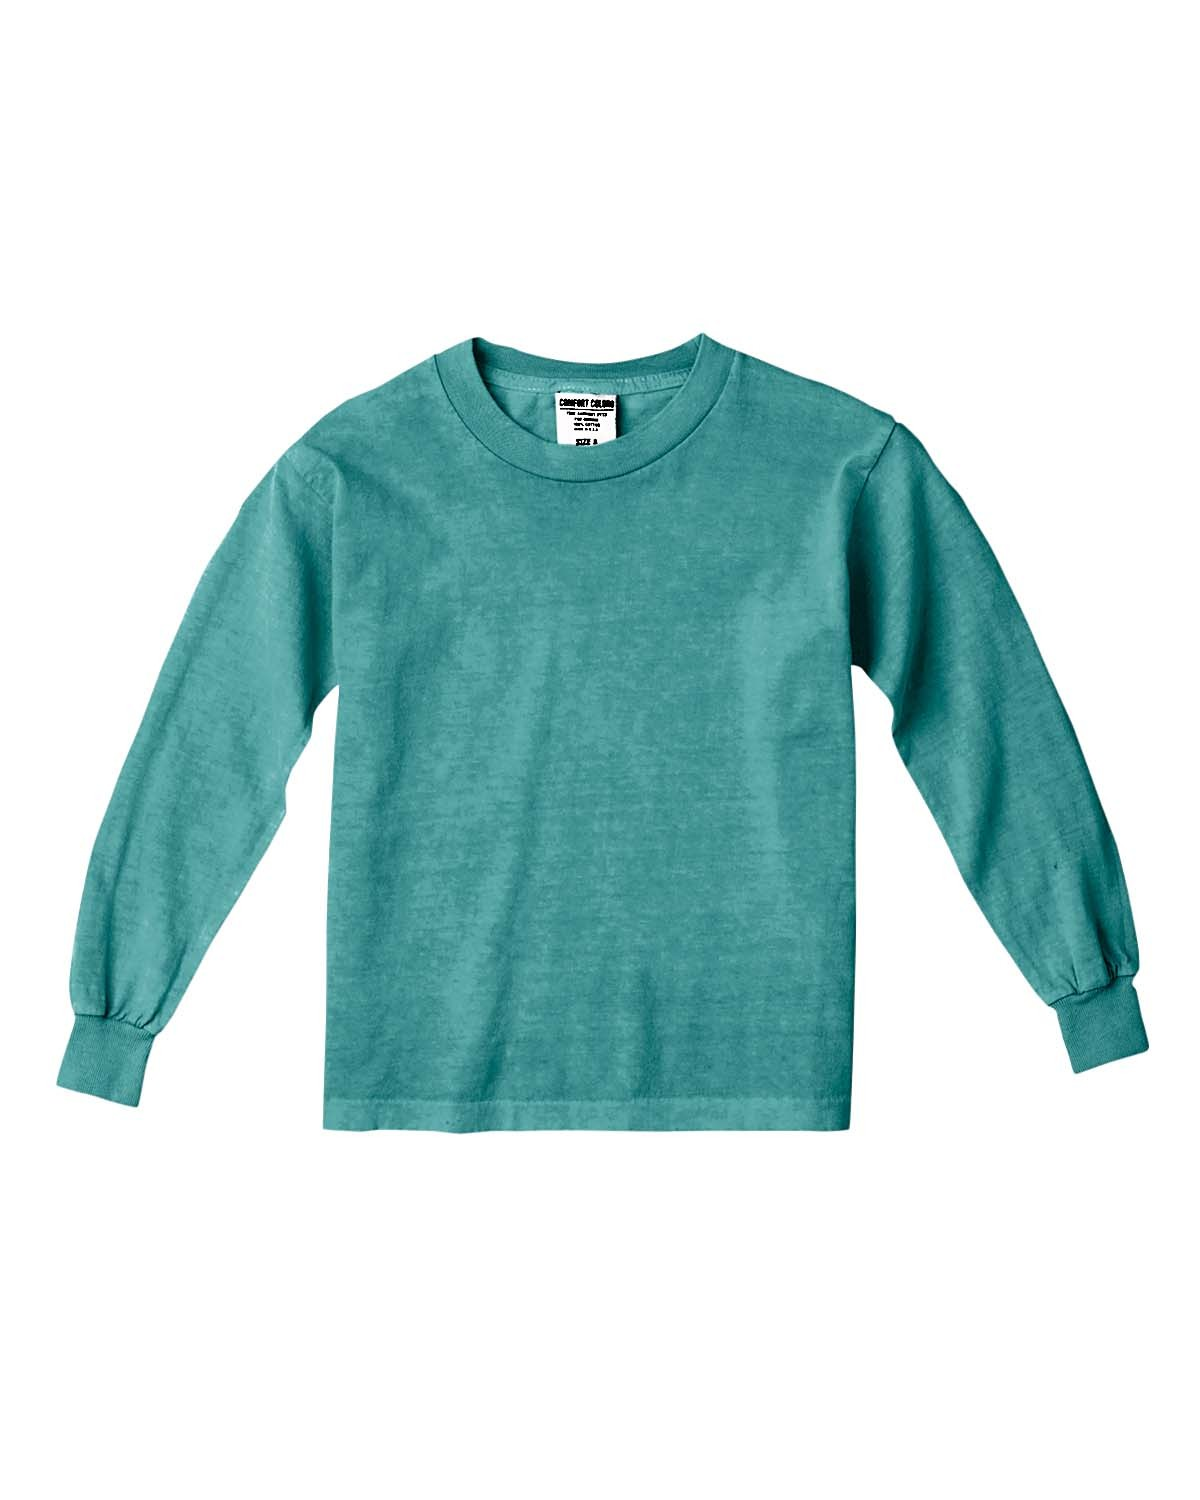 C3483 Comfort Colors Drop Ship SEAFOAM